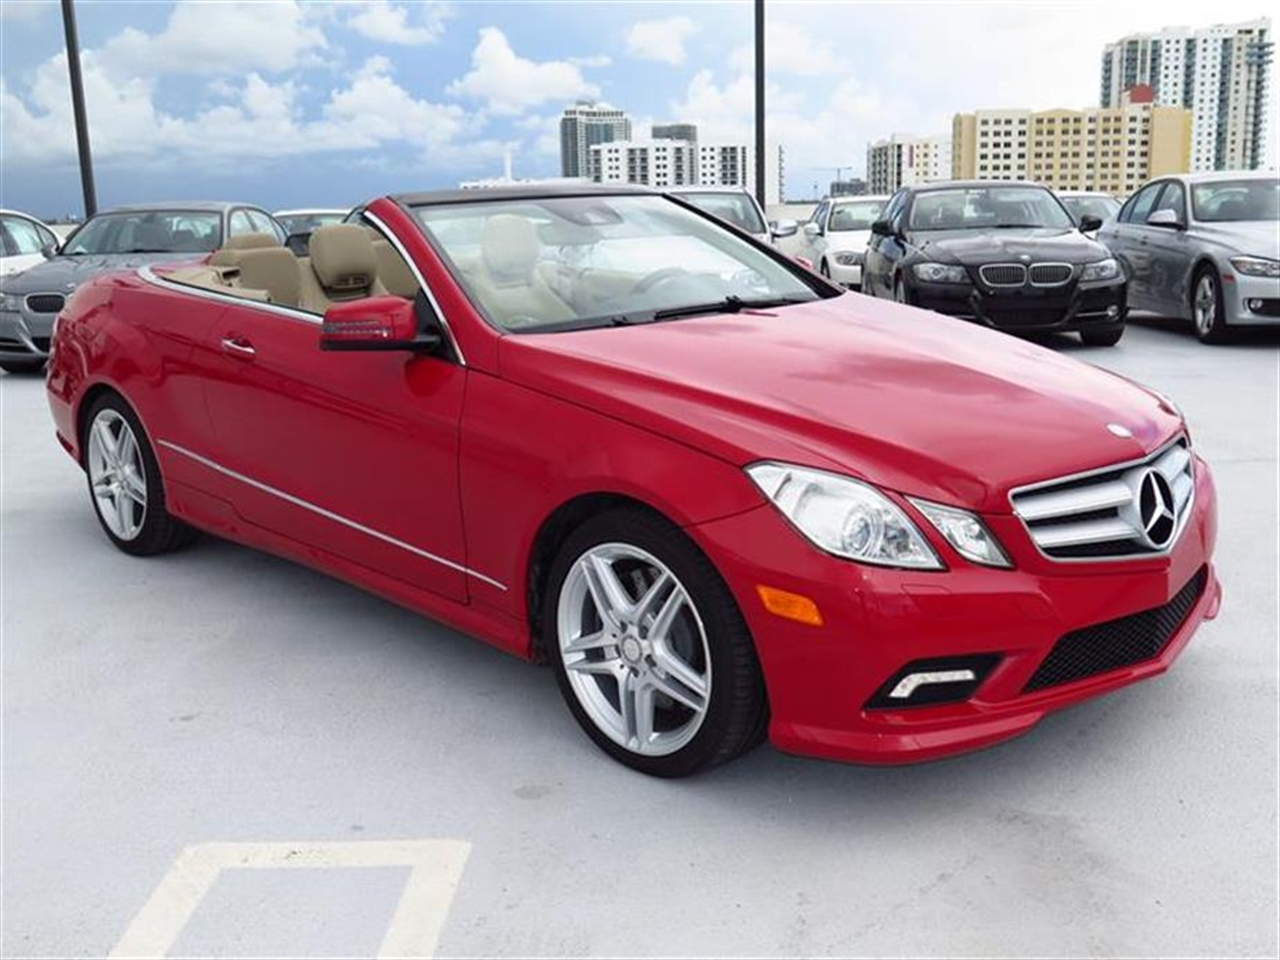 2011 Mercedes E-CLASS 2dr Cabriolet E550 RWD 30833 miles 14-way pwr front bucket seats -inc 3-pos